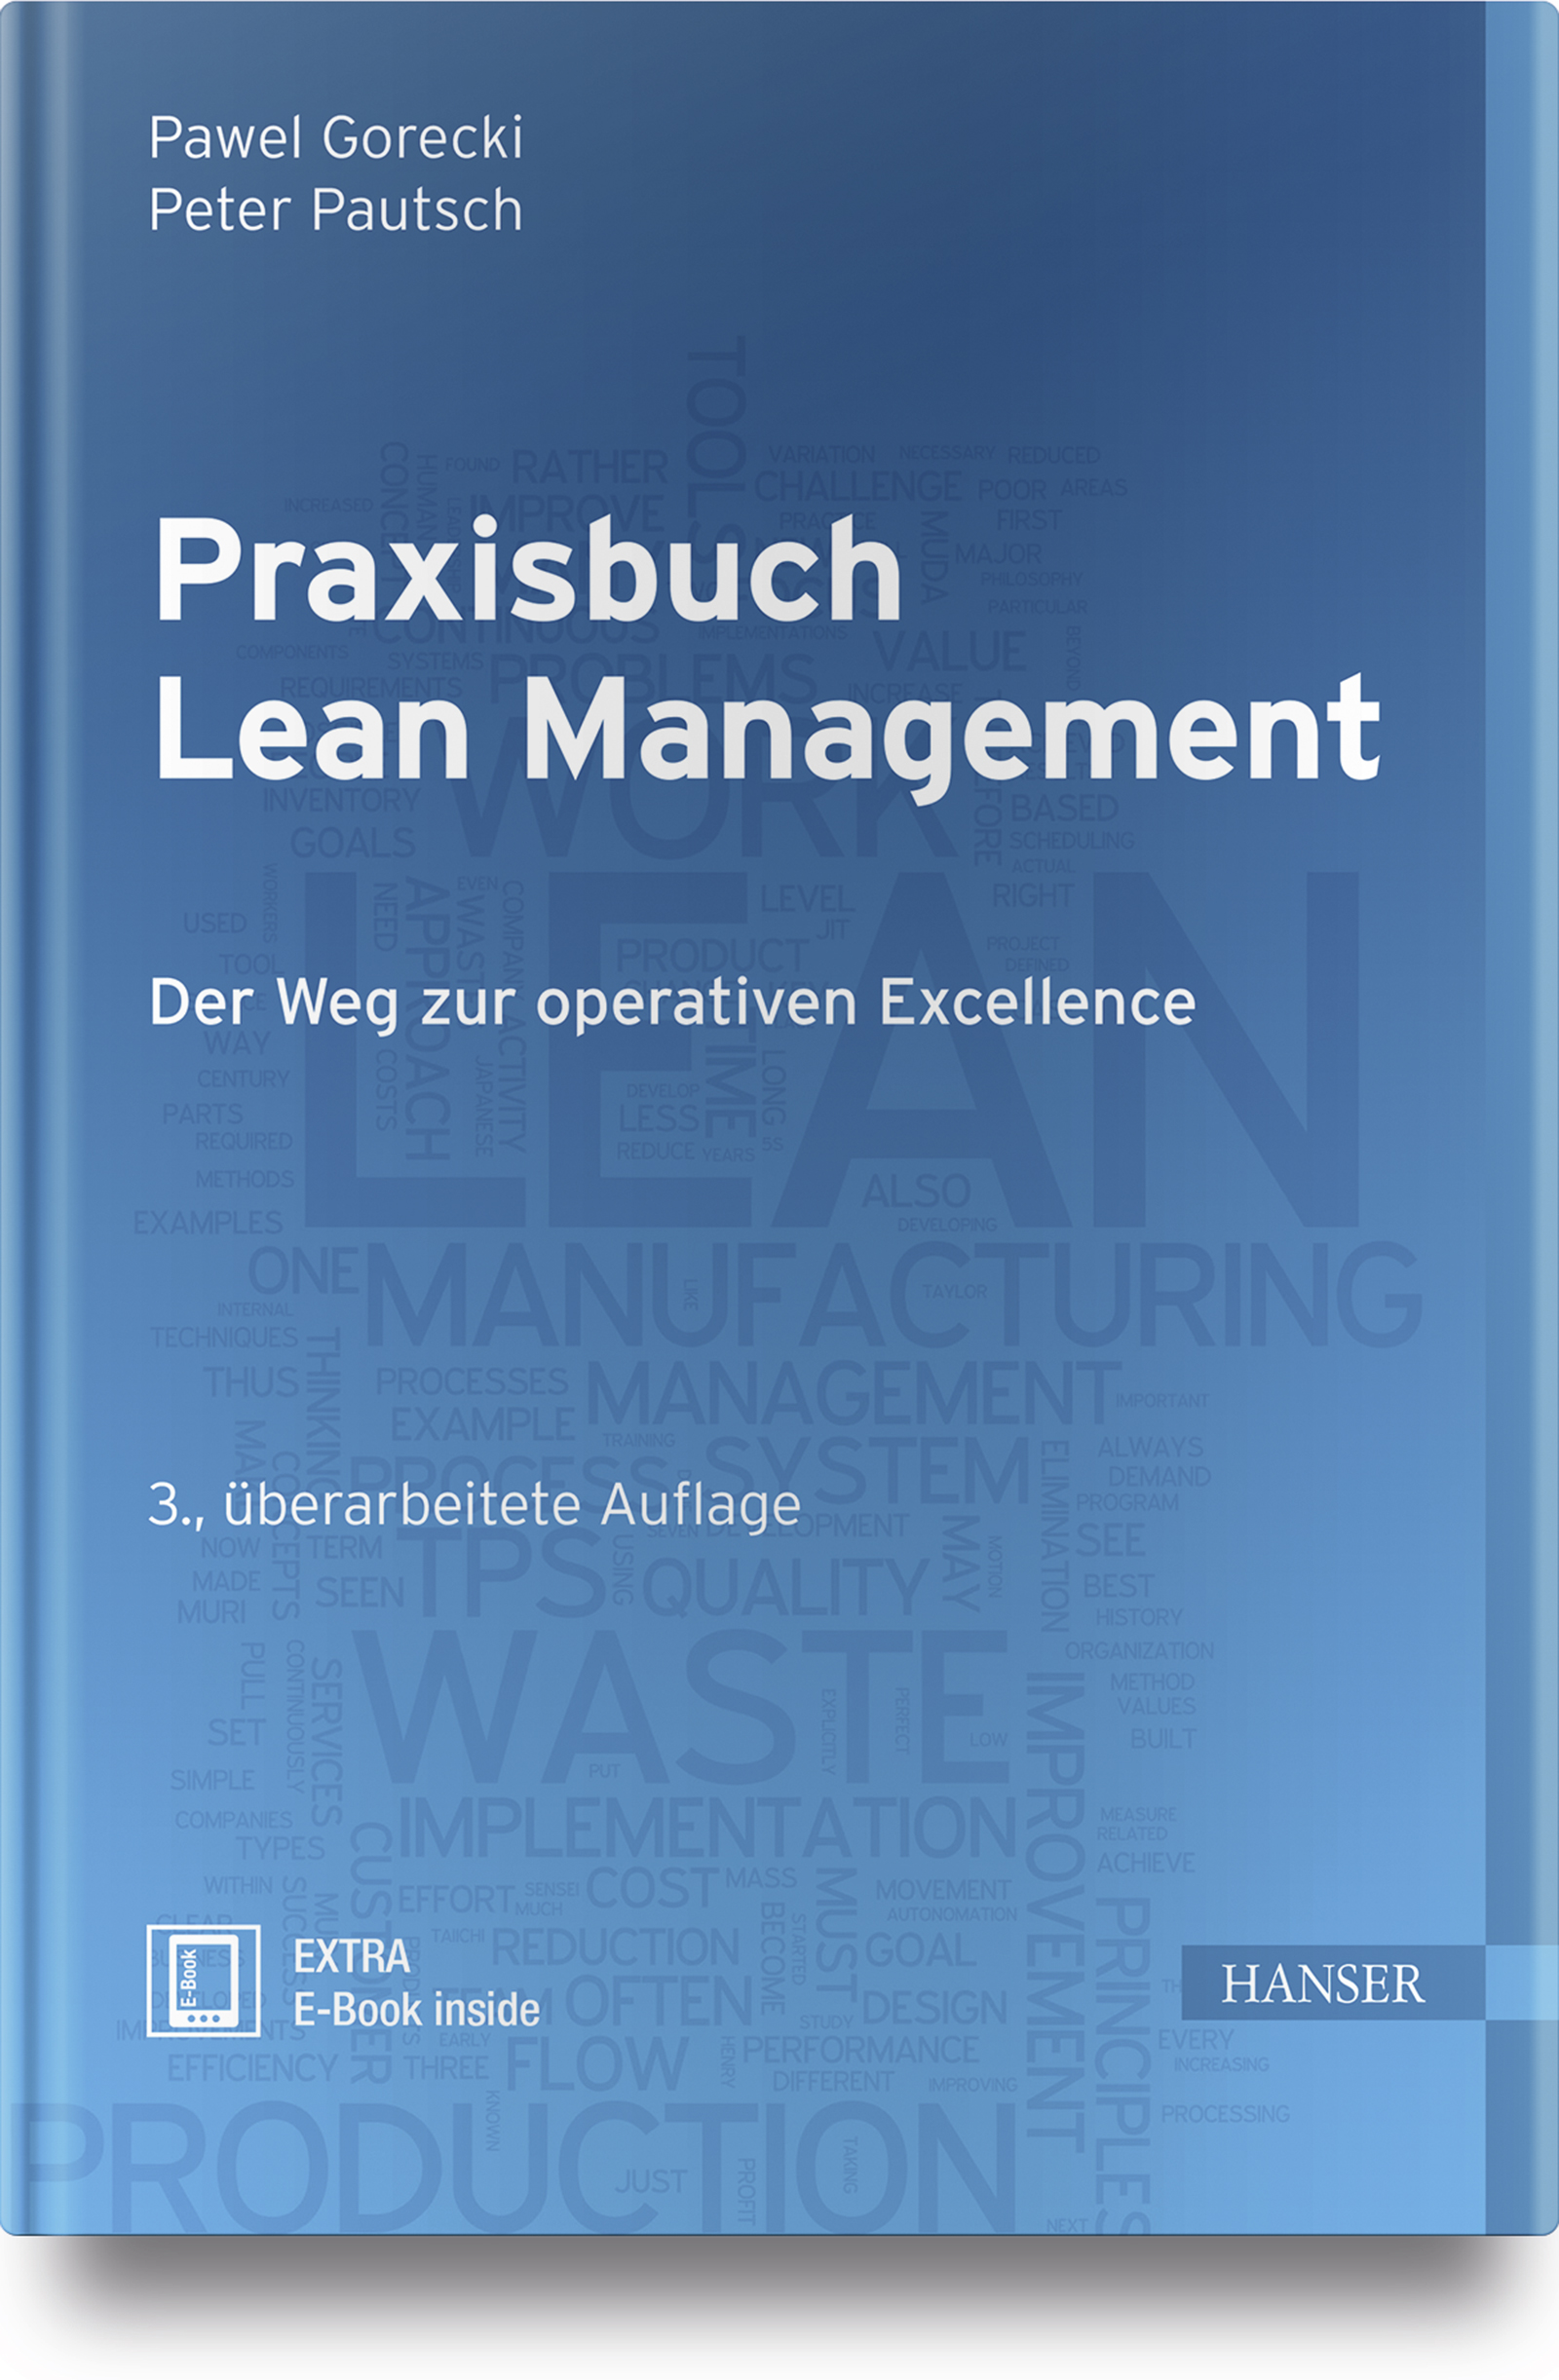 Gorecki, Pautsch, Praxisbuch Lean Management, 978-3-446-45526-9